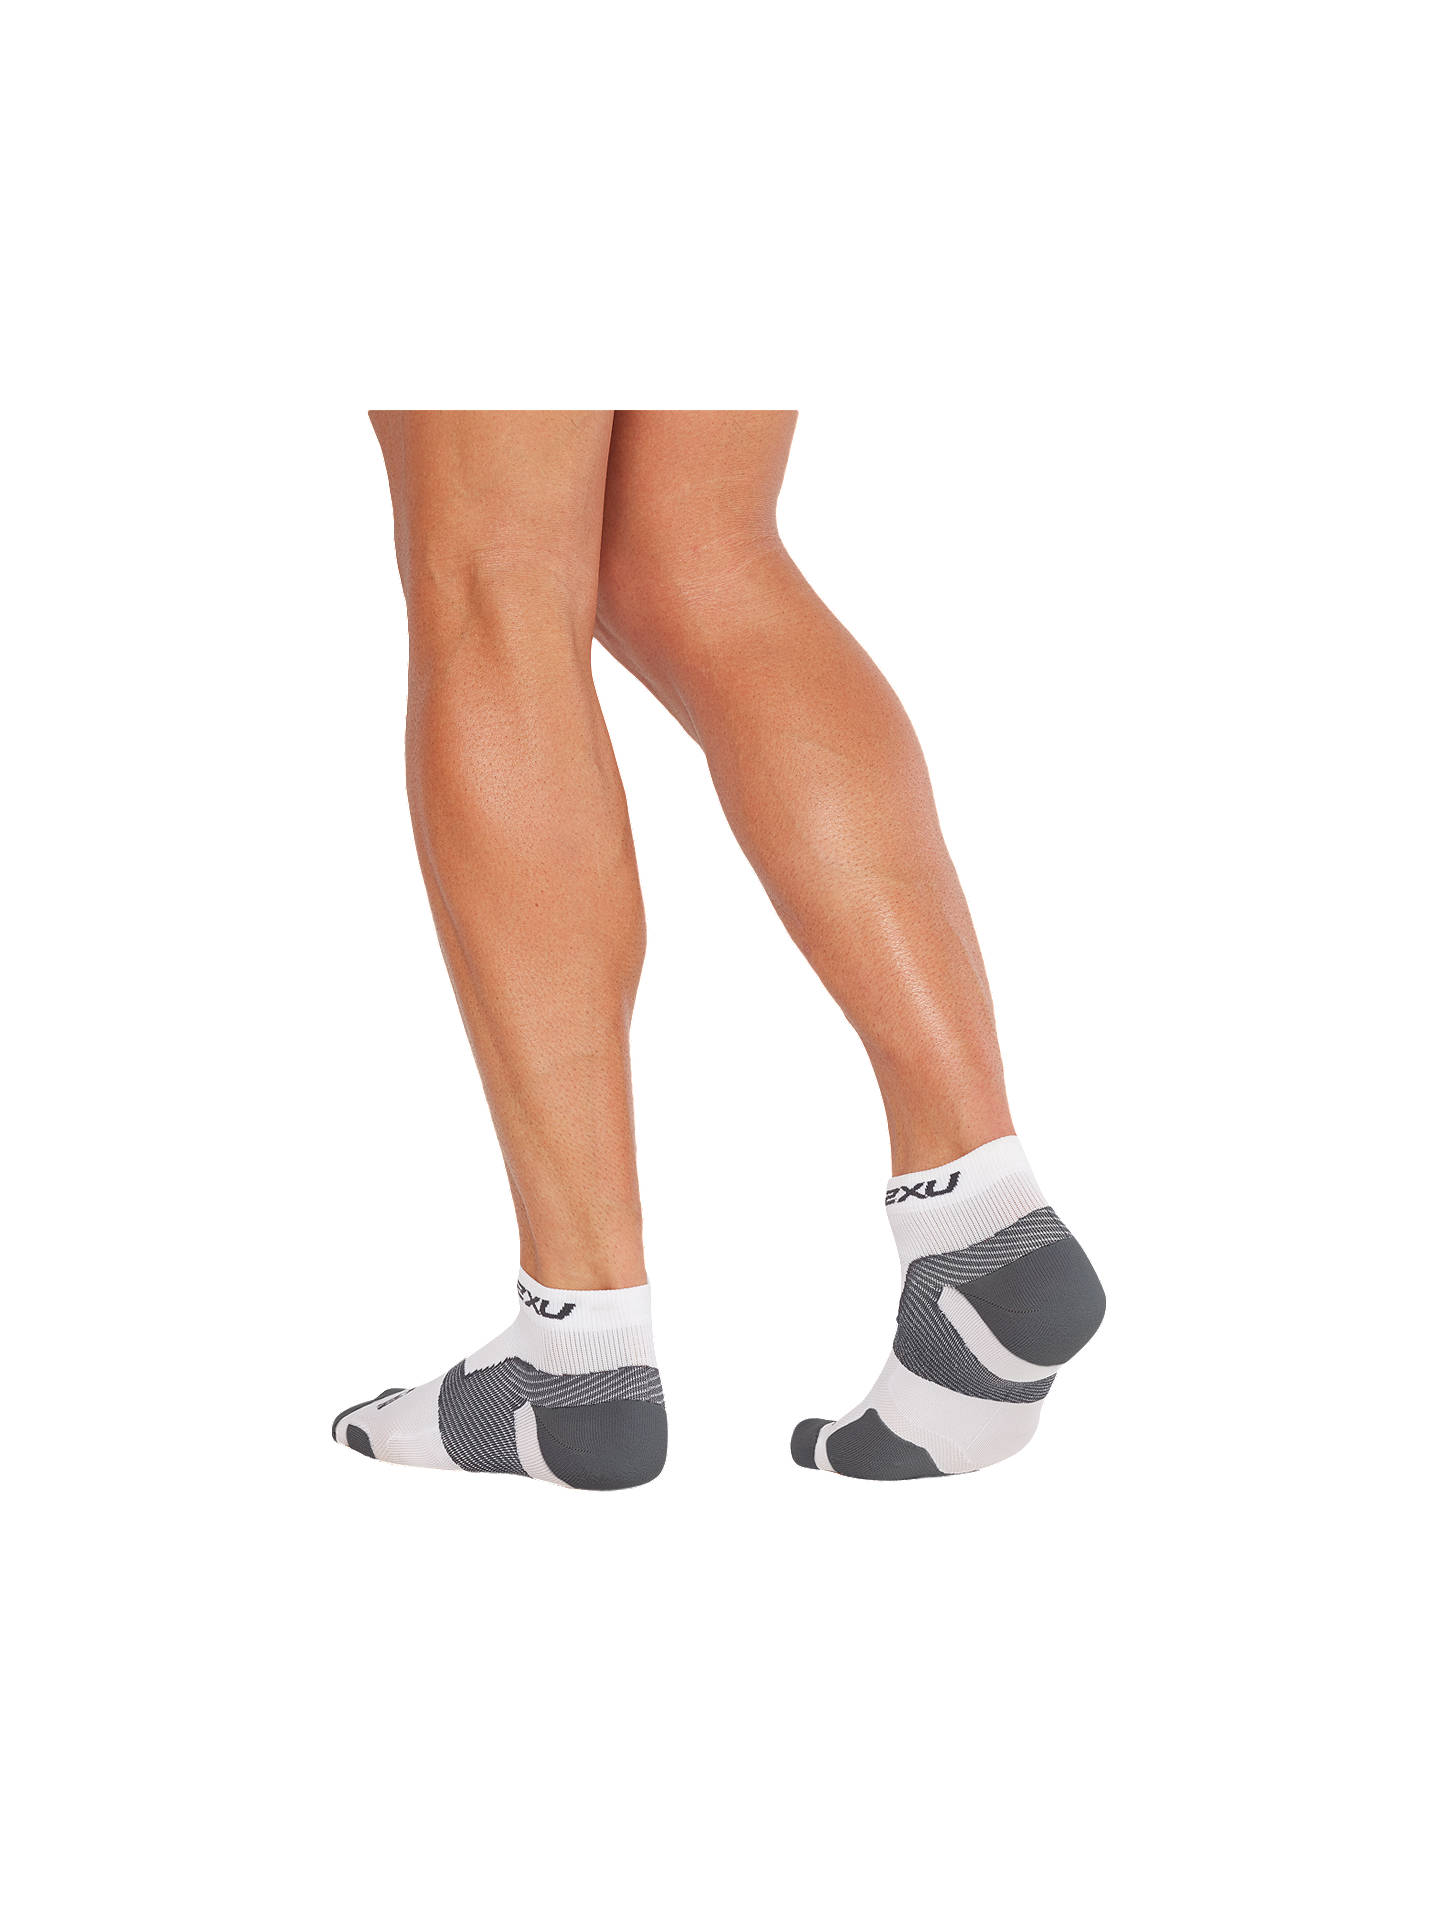 Buy 2XU Vectr 1/4 Compression Socks, White/Grey, S Online at johnlewis.com